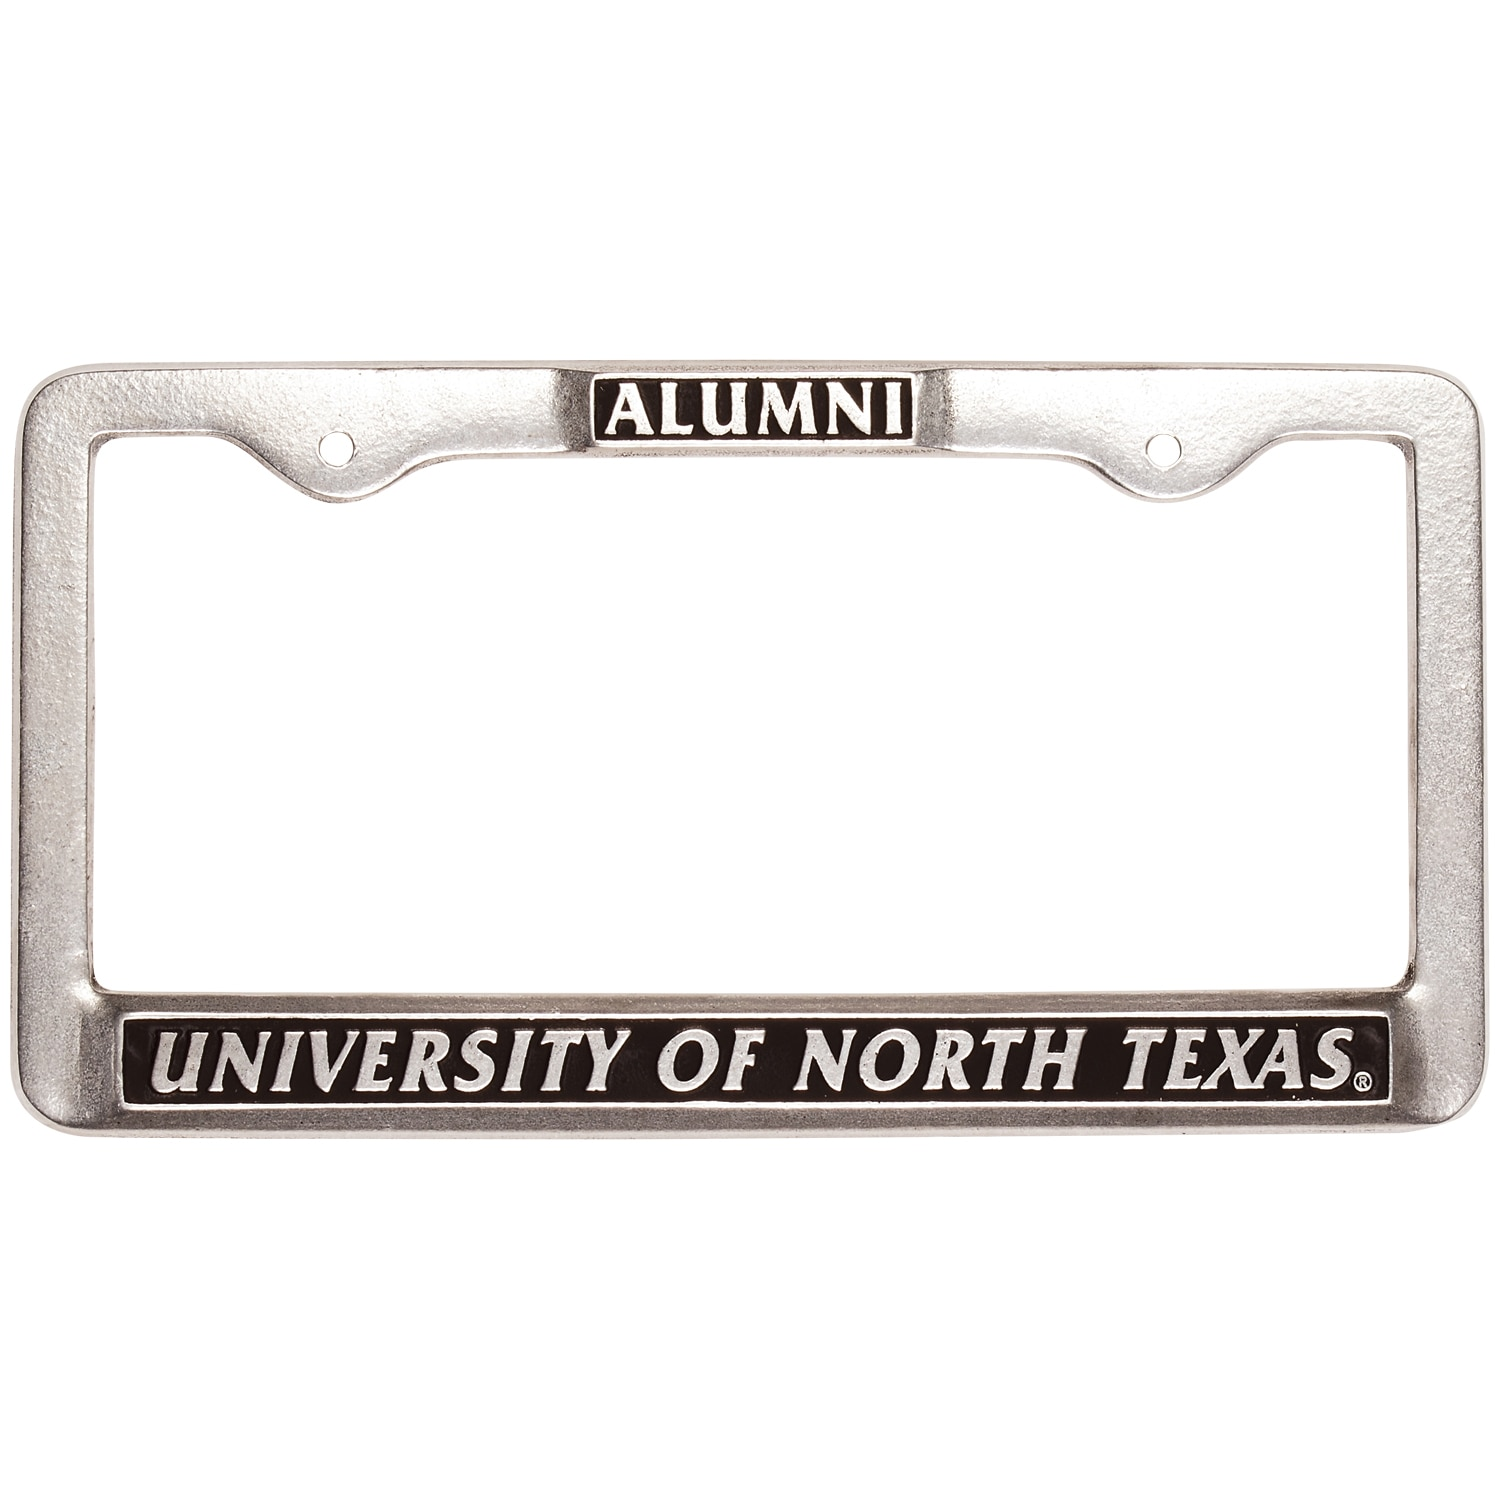 University of North Texas License Plate Frame